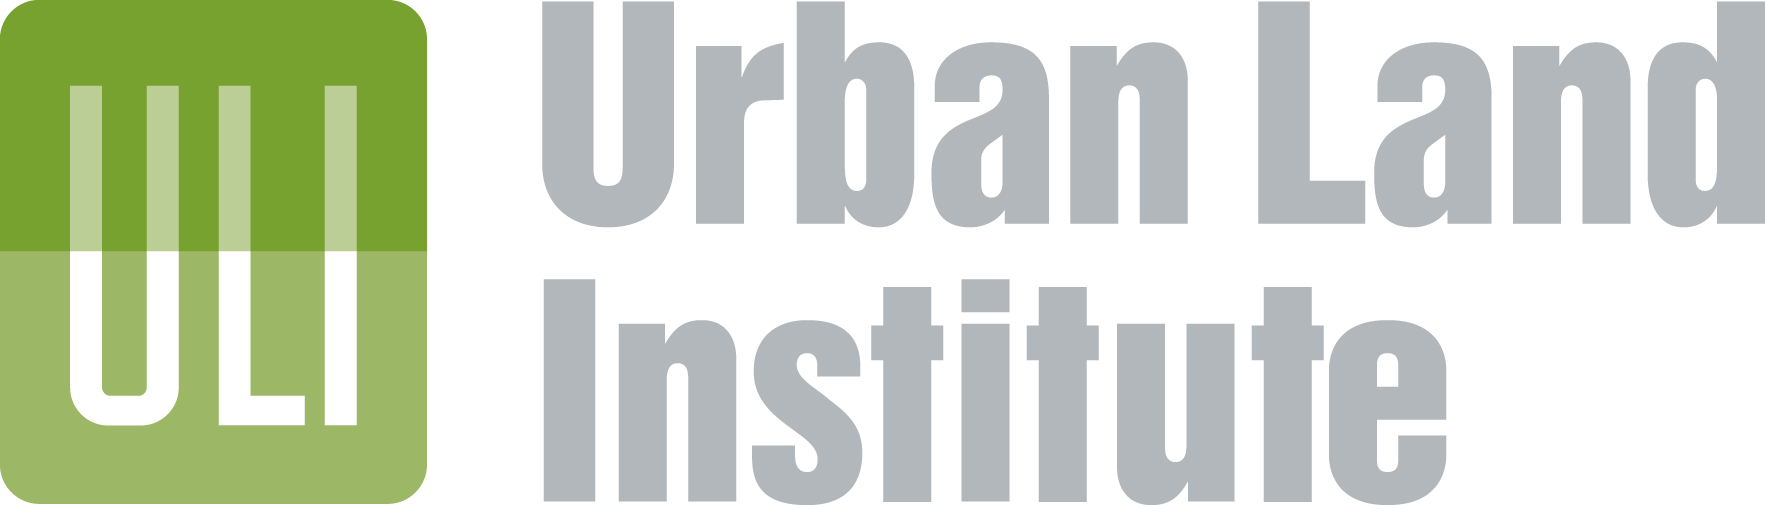 urbanlandlogotransparent.png